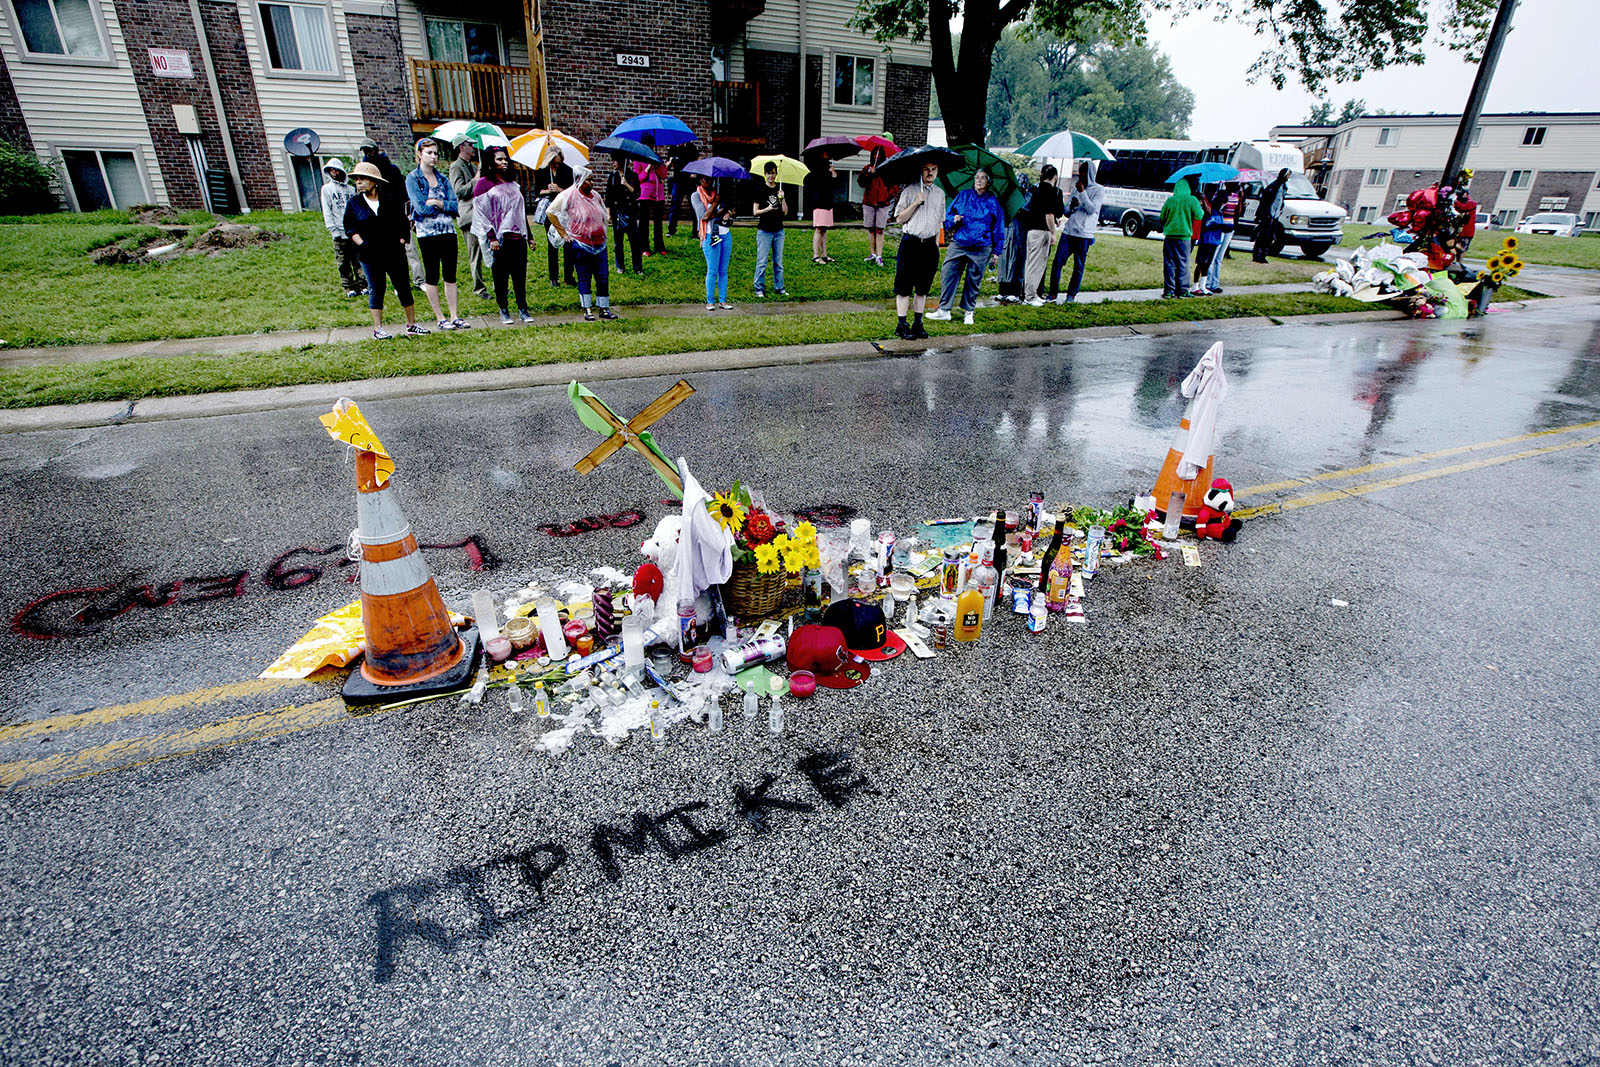 August 2014: There are flowers on the spot where unarmed 18-year-old African American Michael Brown was shot and killed by the police.